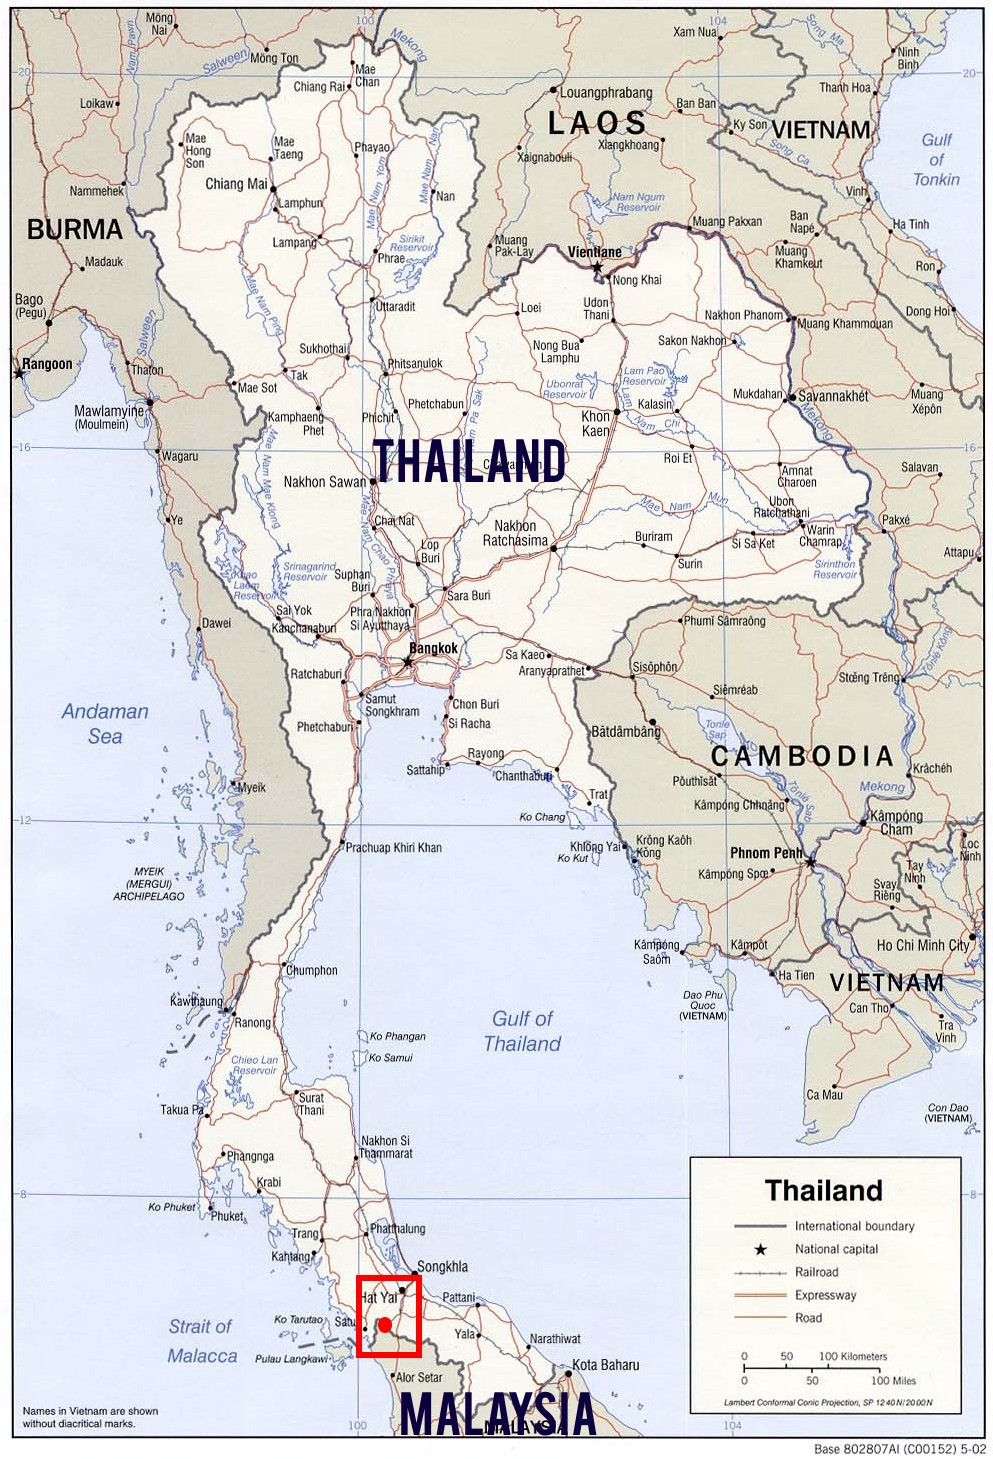 Red dot is the southern border crossing, Hat Yai - Padang Besar (courtesy of mapcruzin.com)